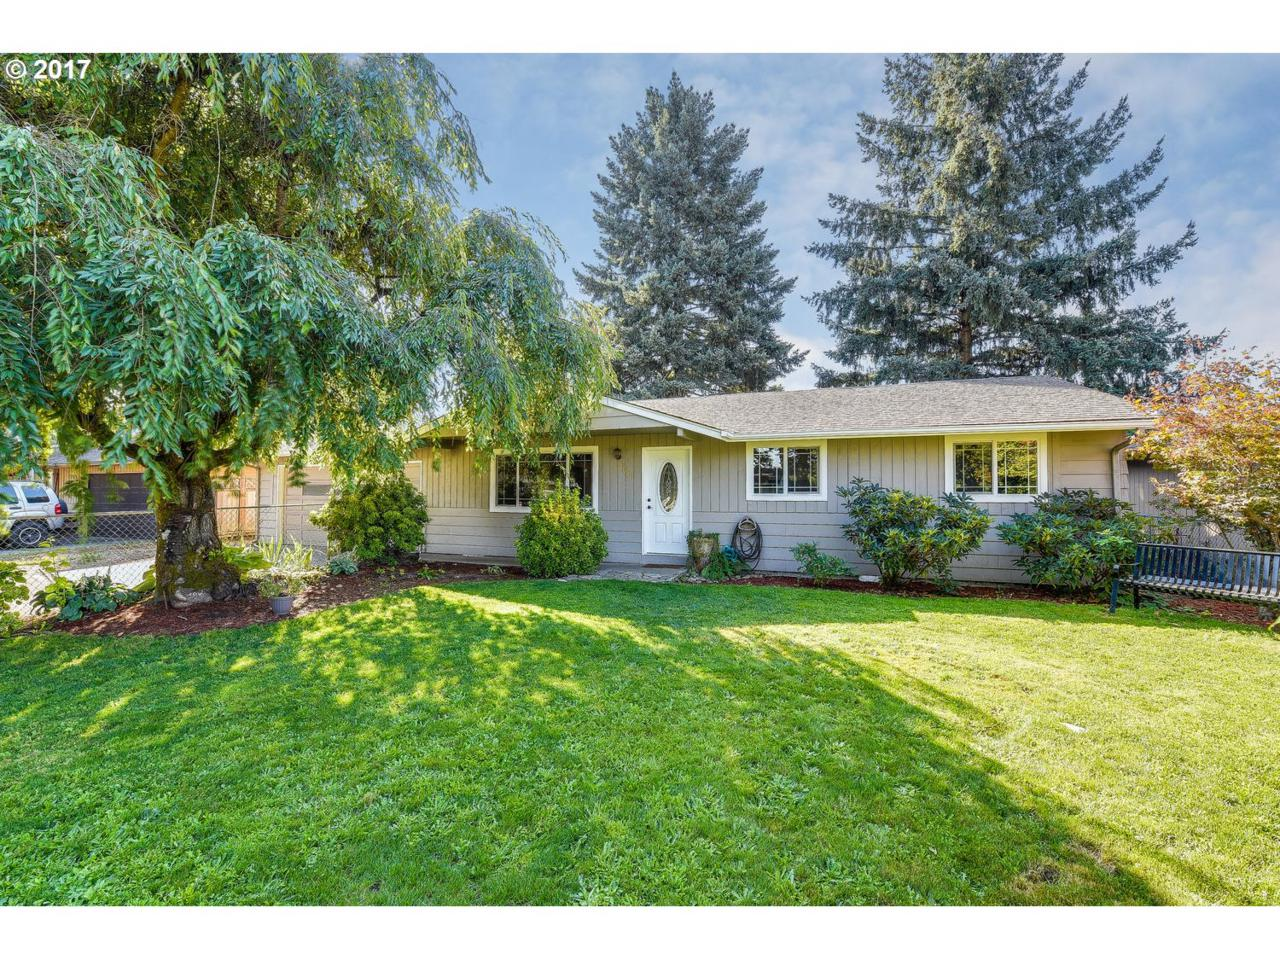 11911 NE 79TH St, Vancouver, WA 98682 (MLS #17369038) :: The Dale Chumbley Group